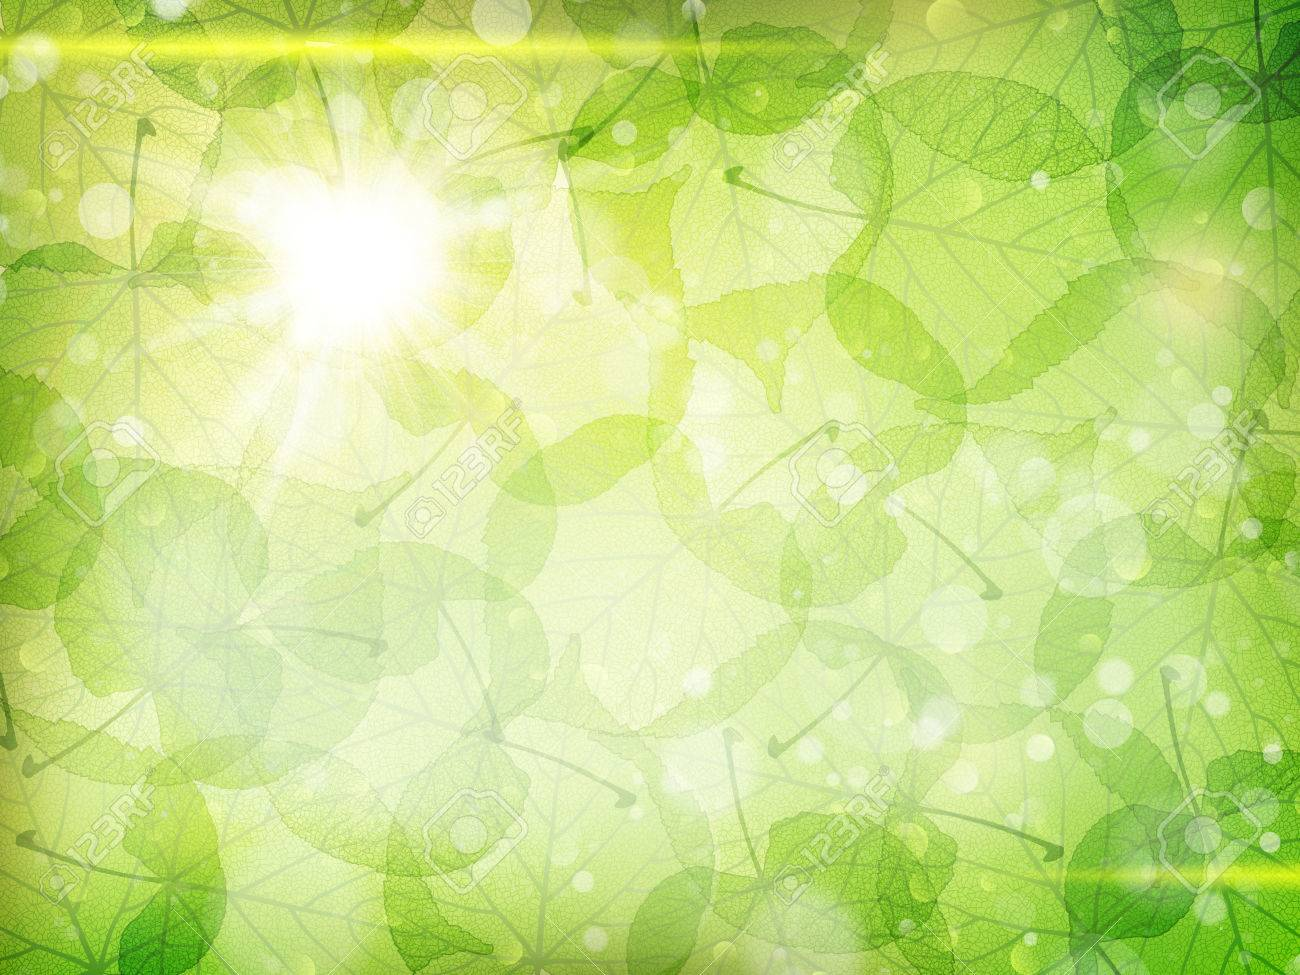 Green leaves background. EPS 10 vector file included - 51470966